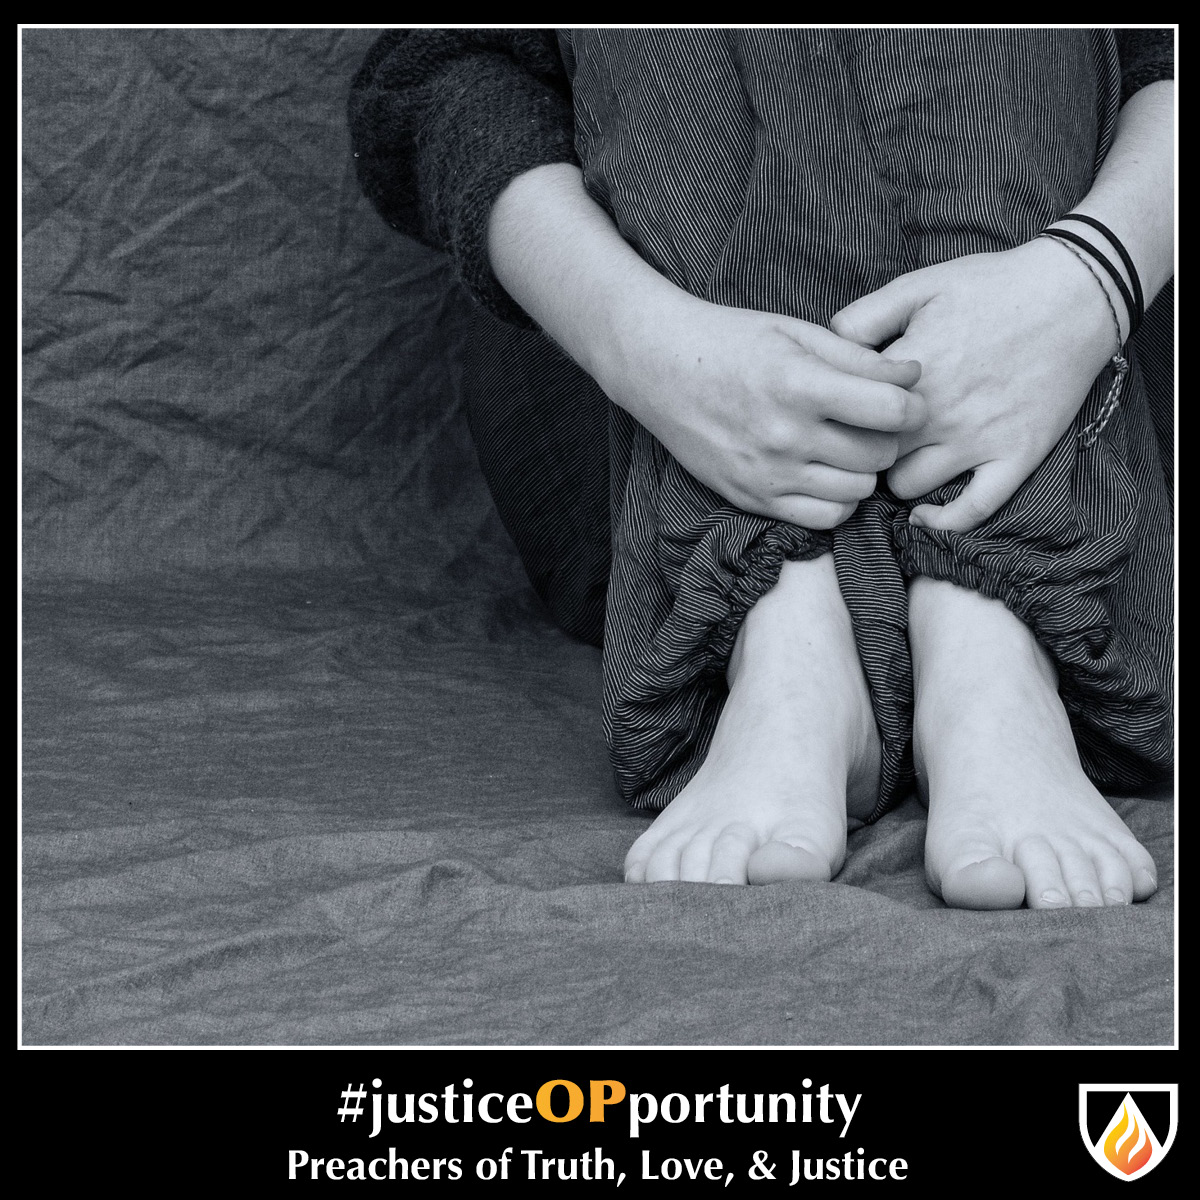 #justiceOPportunity Thursday—July 1, 2021